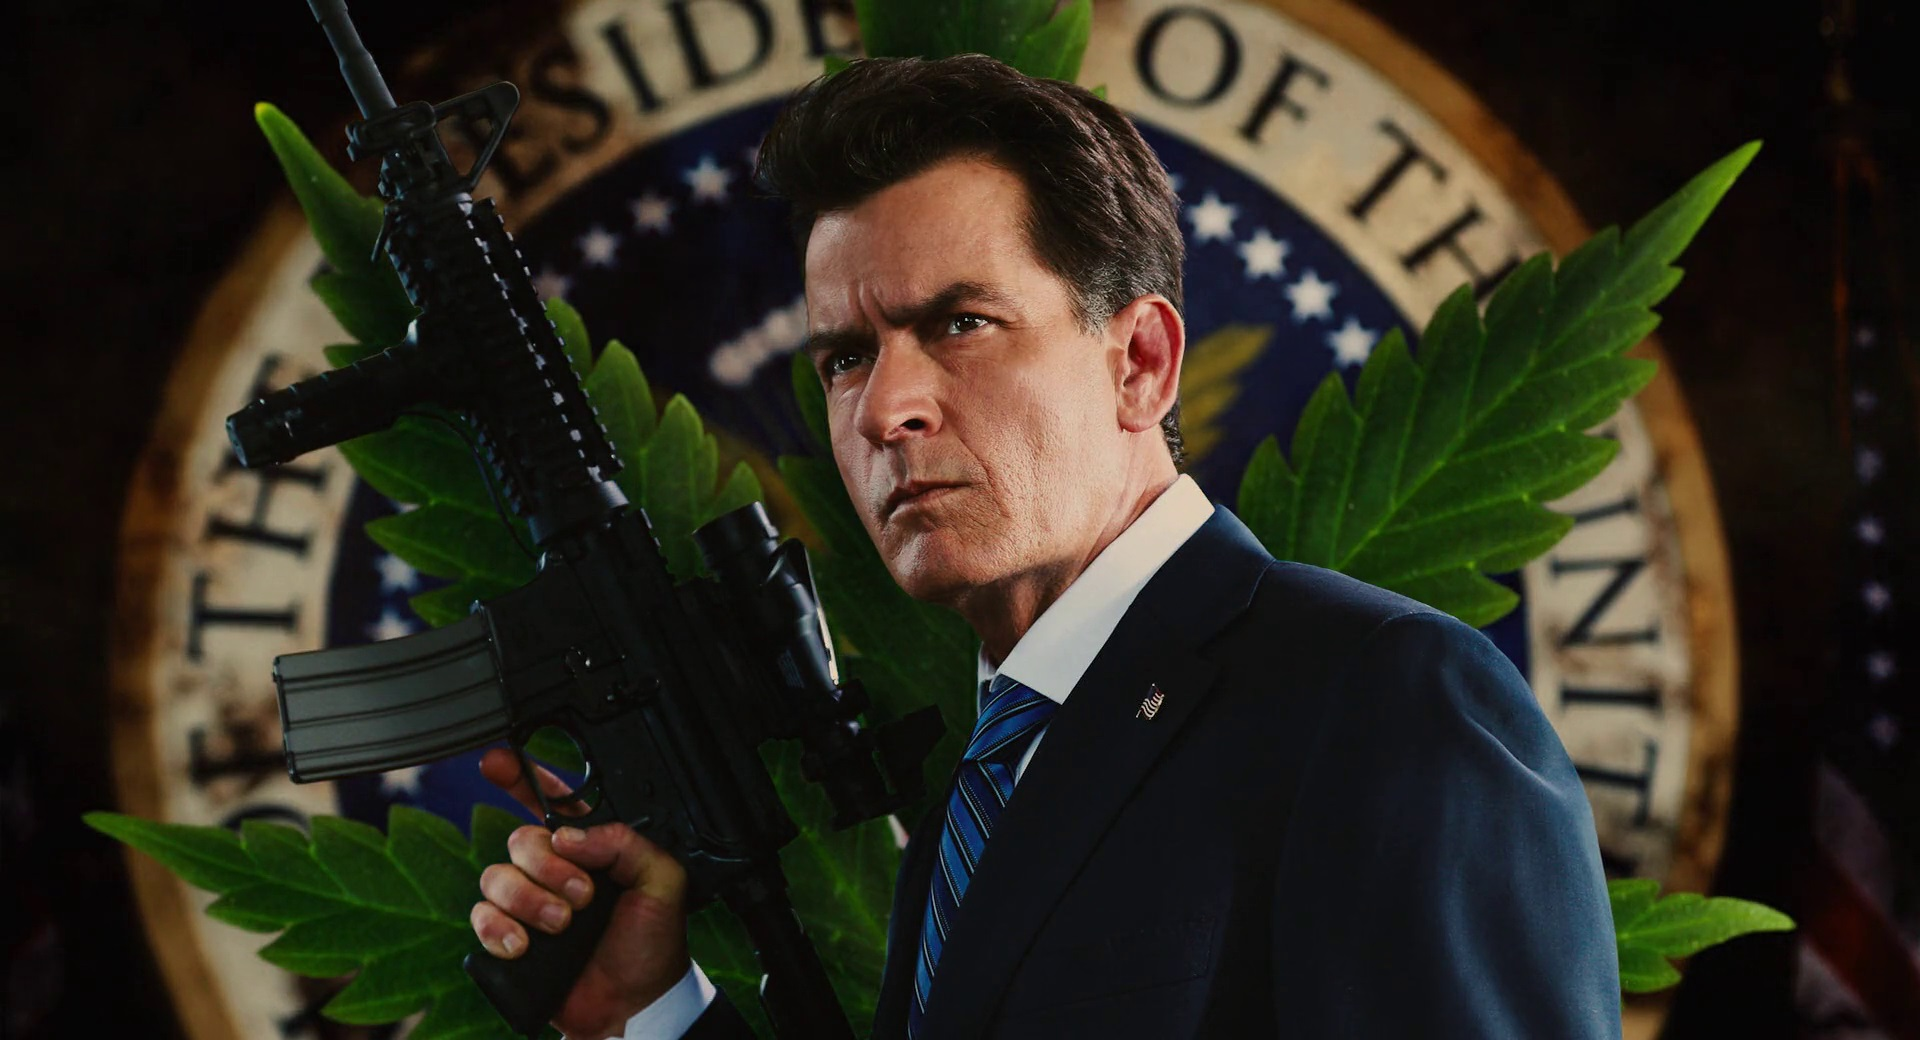 Charlie Sheen (or Carlos Estevez) as the US President in Machete Kills (2013)